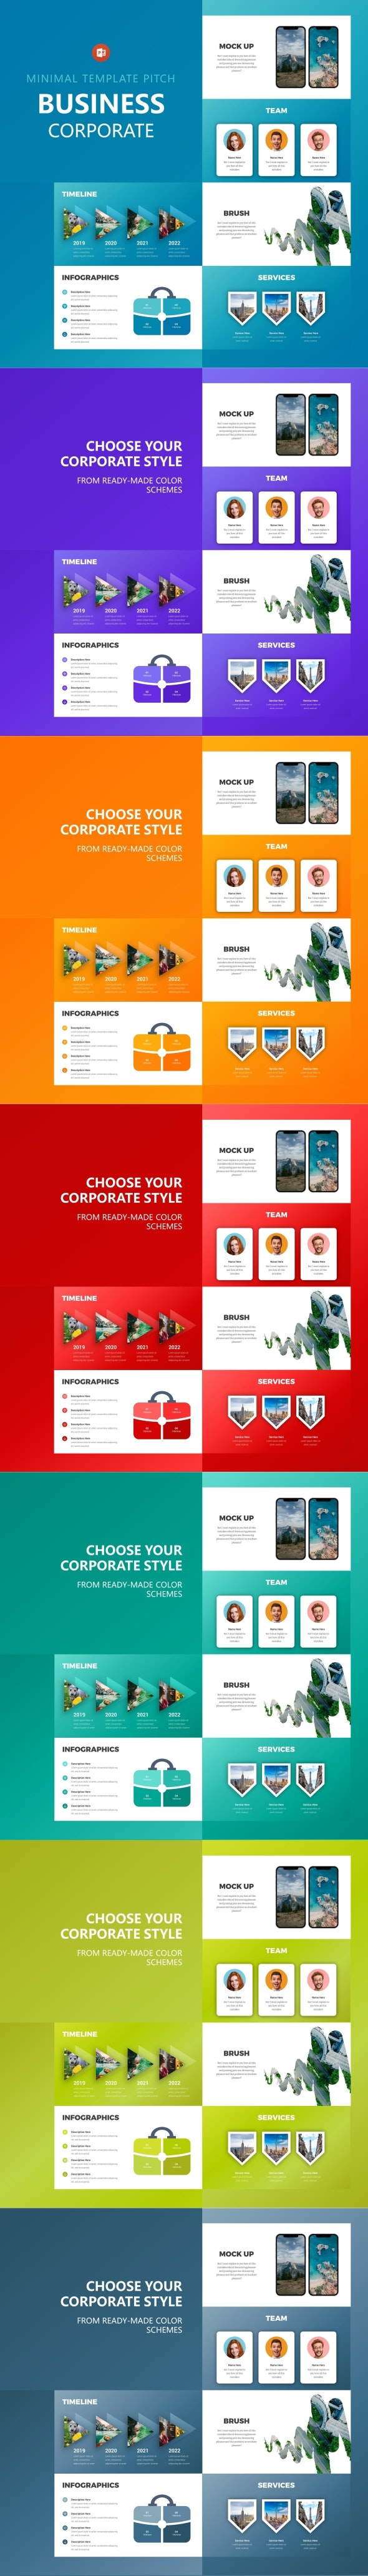 Business Corporate Powerpoint - Business PowerPoint Templates